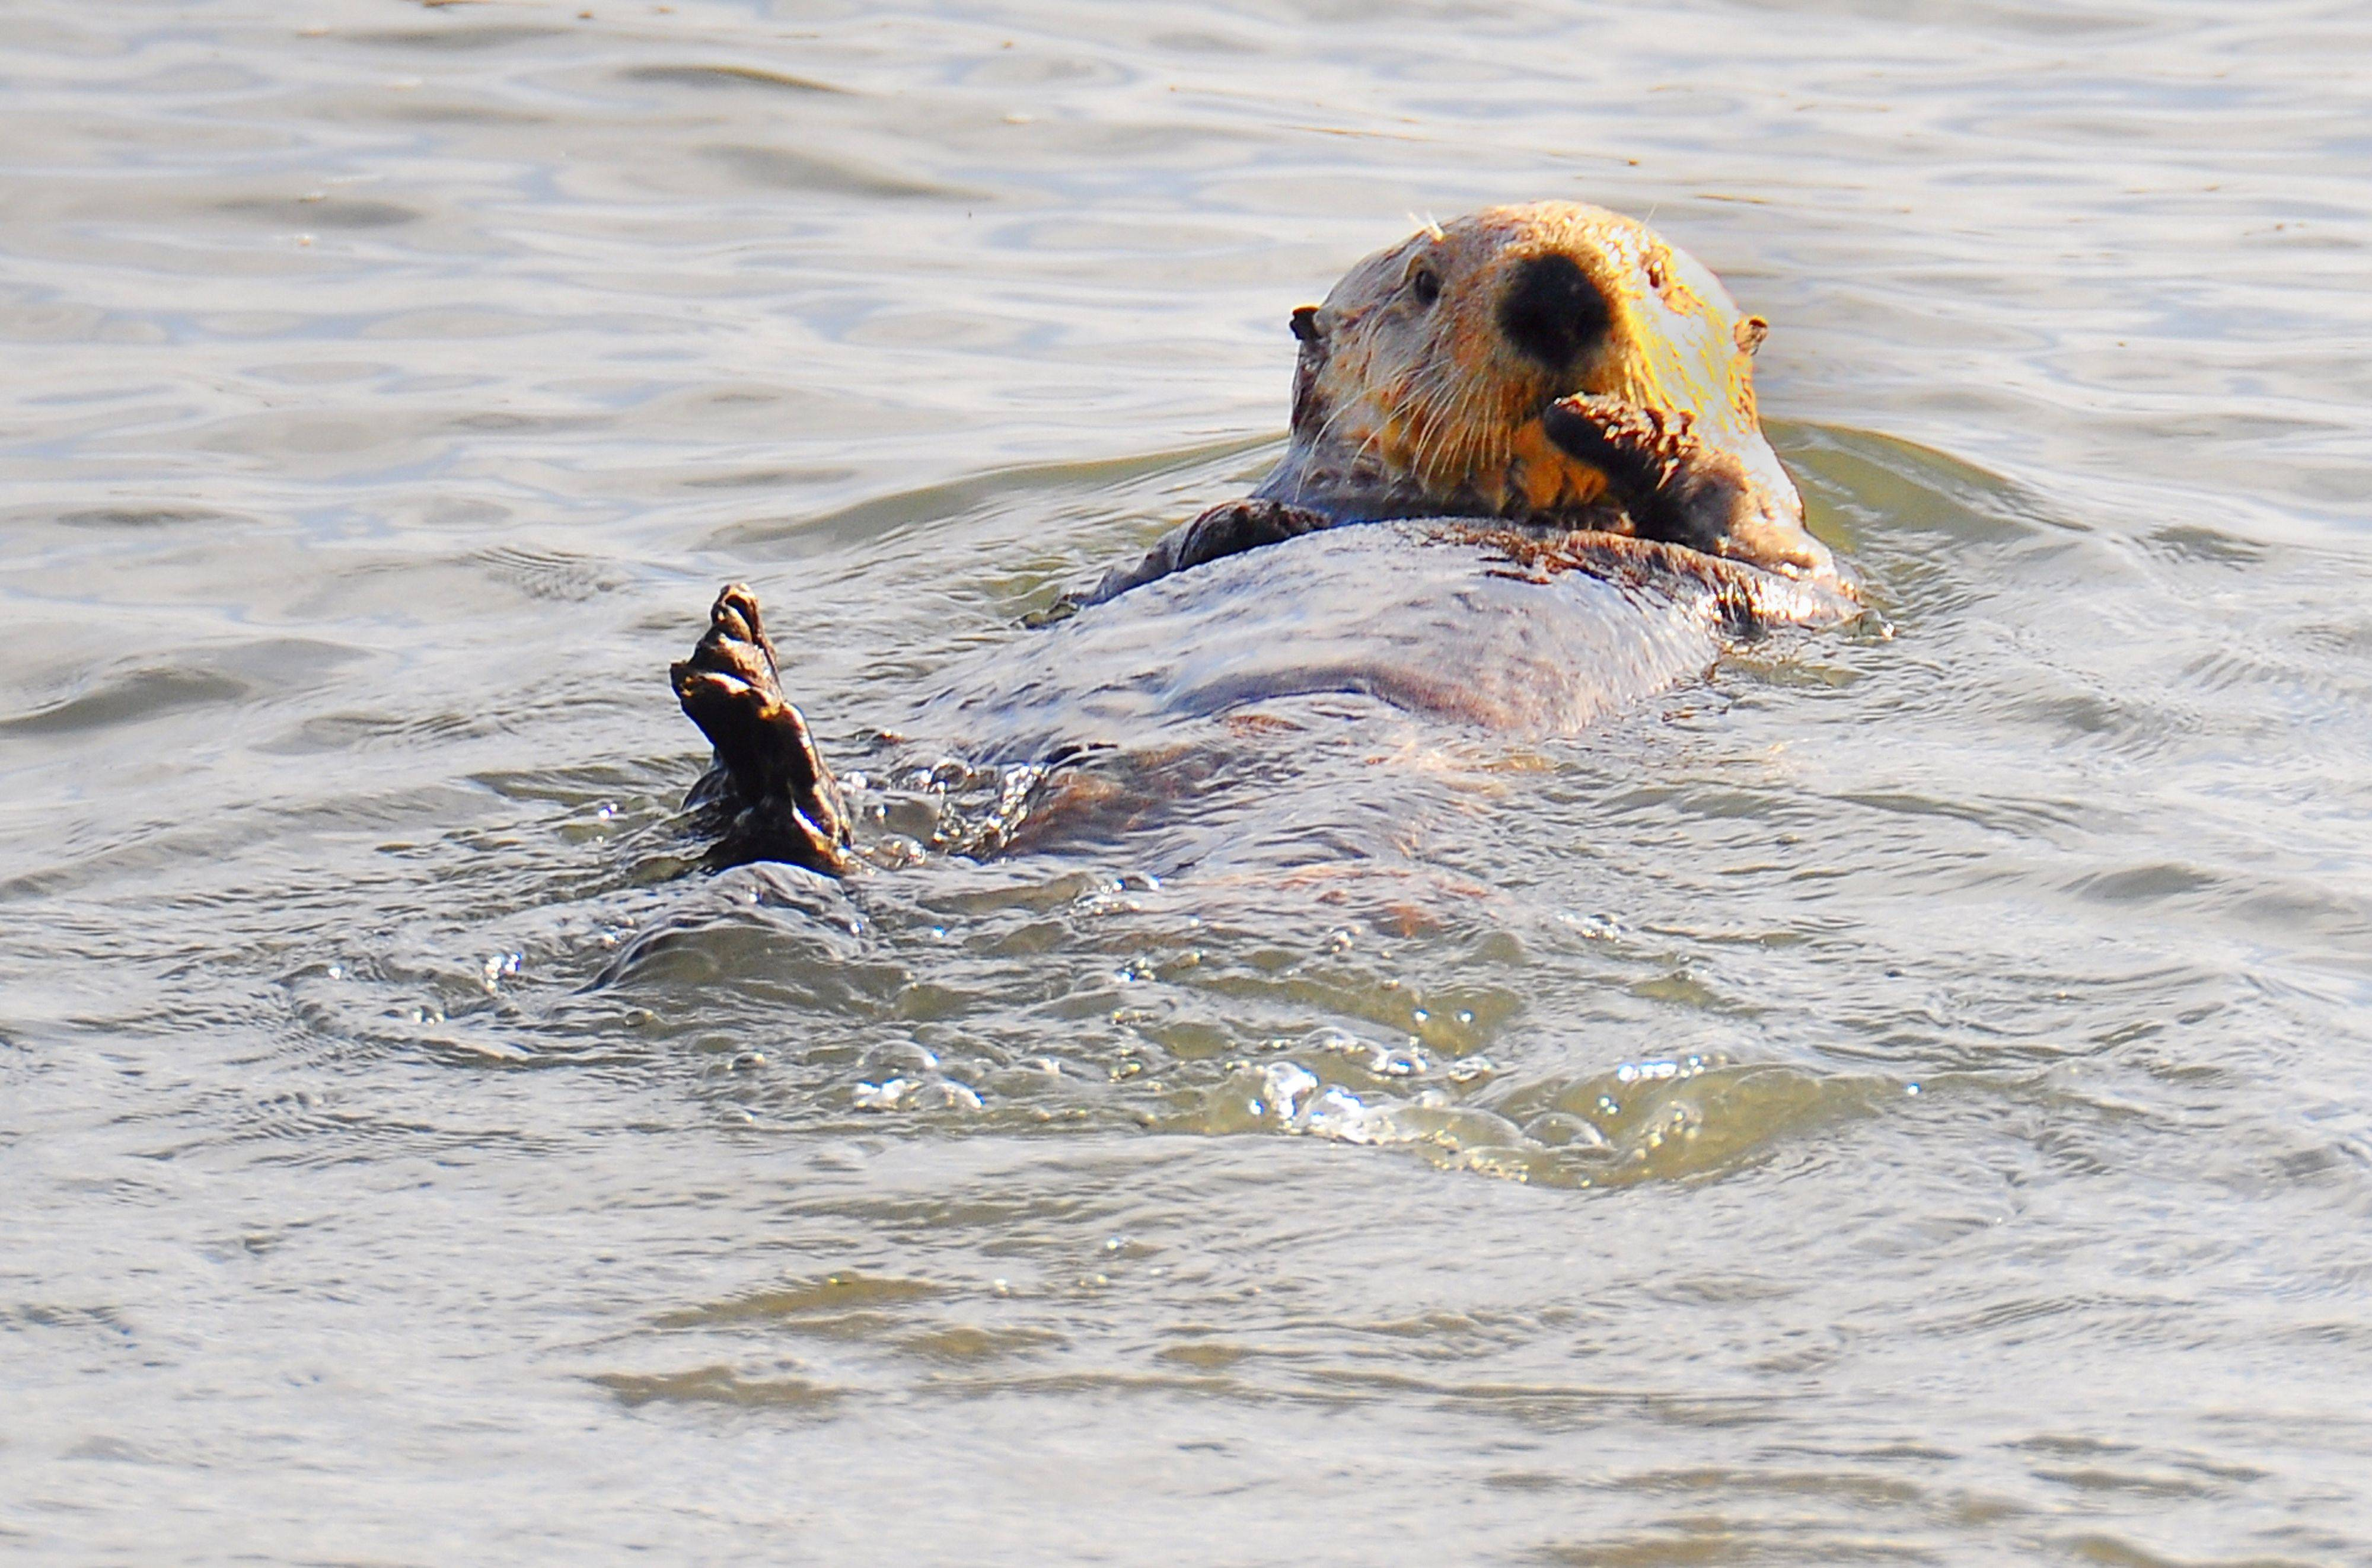 Early morning sun strikes a sea otter just before he dives for breakfast at Moss Landing, CA this past summer.